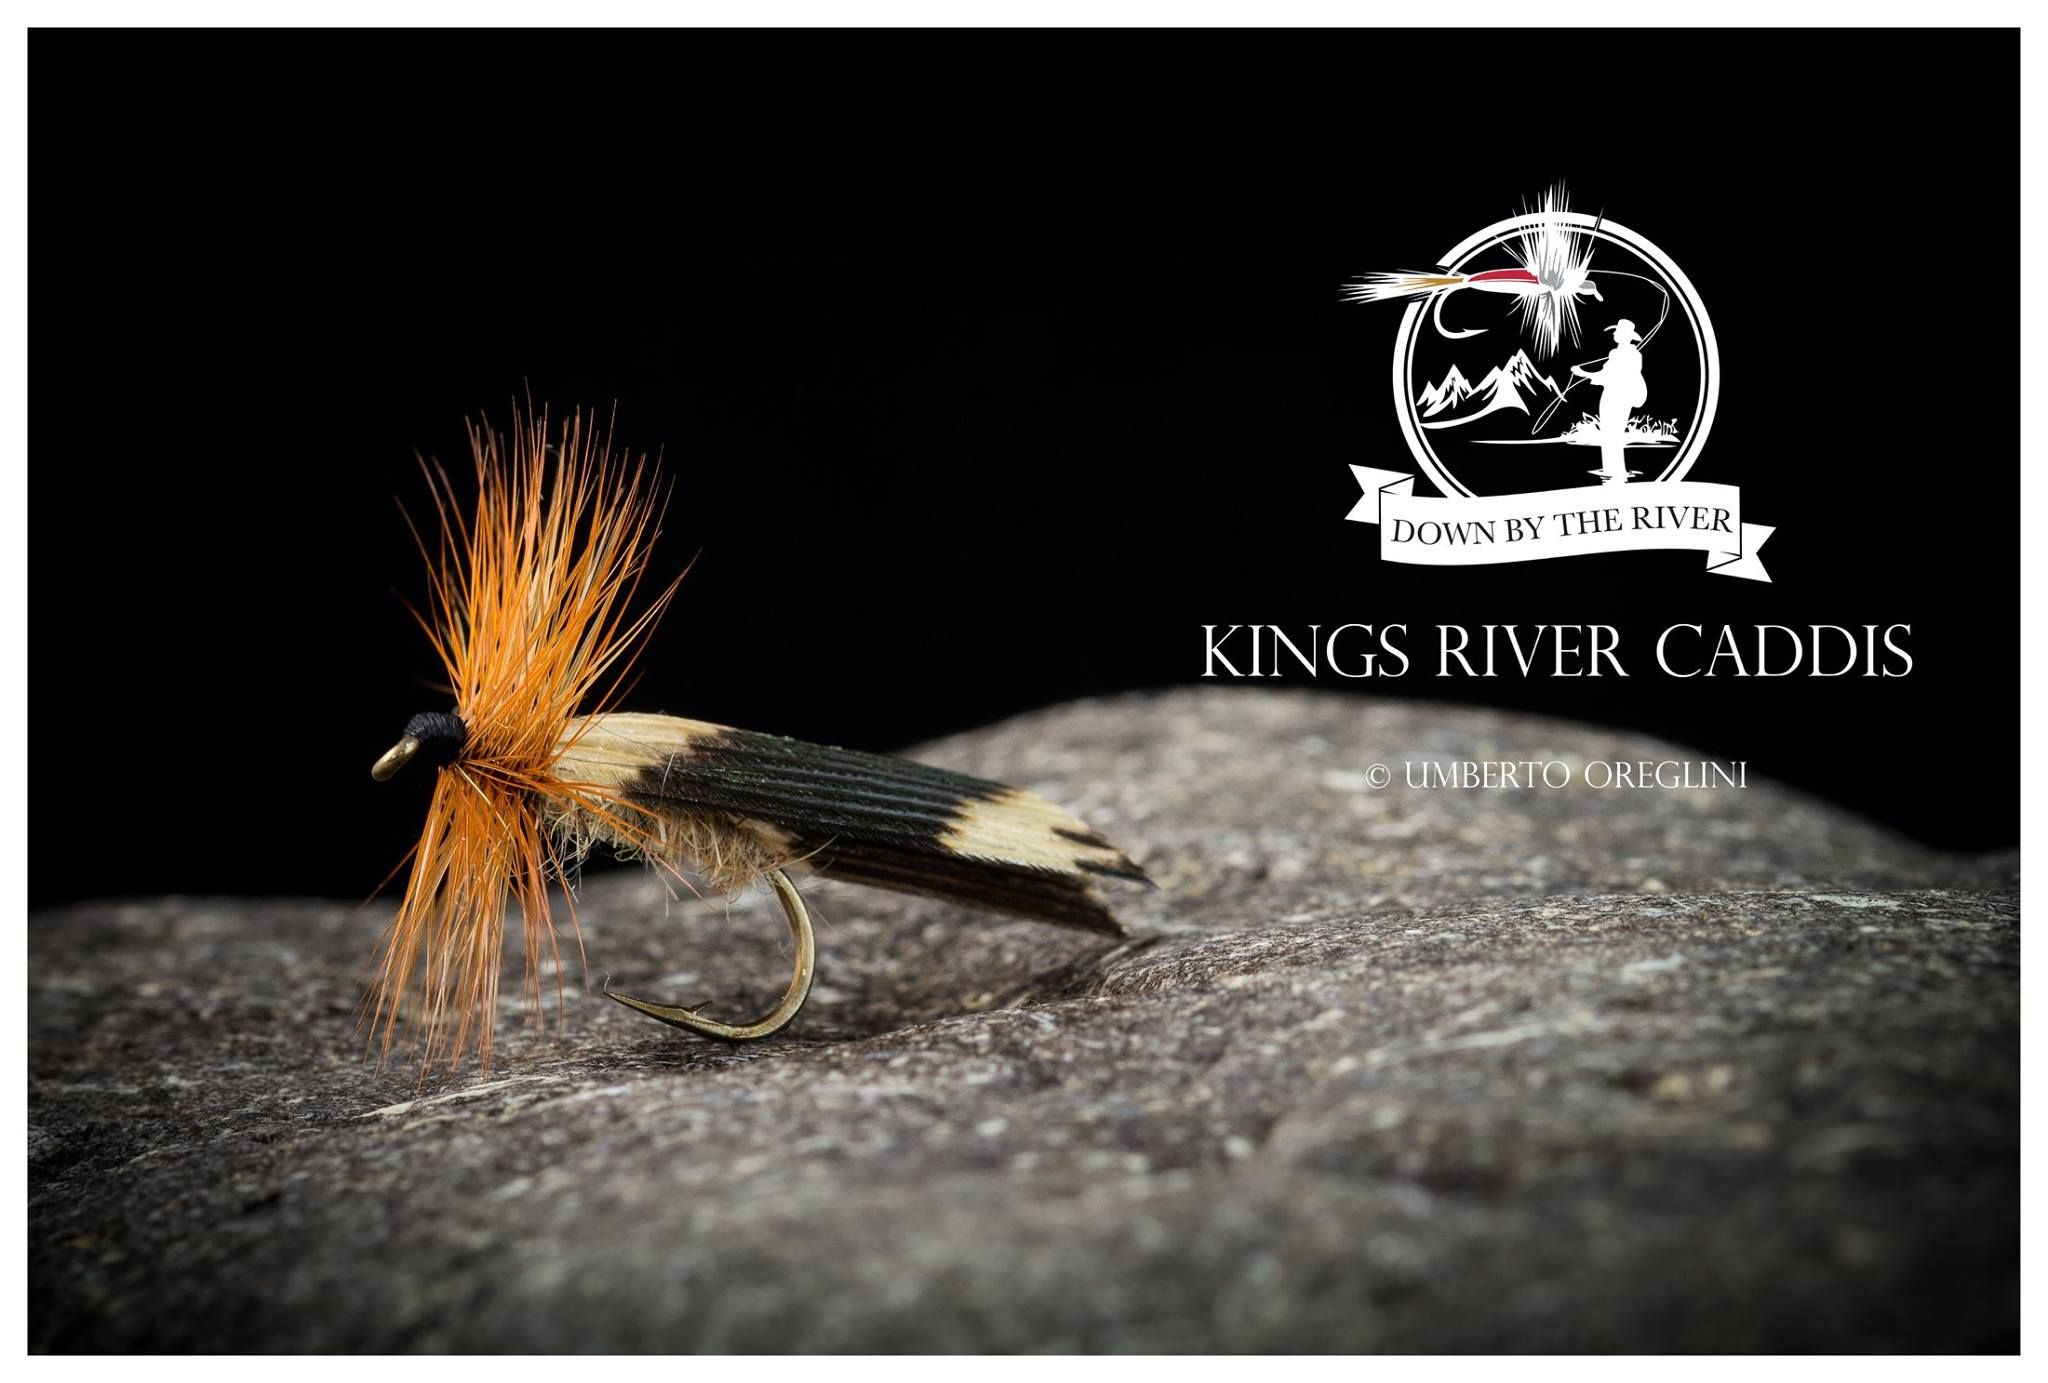 6 x King River Caddis Dry Fly Fishing Flies For Trout Salmon